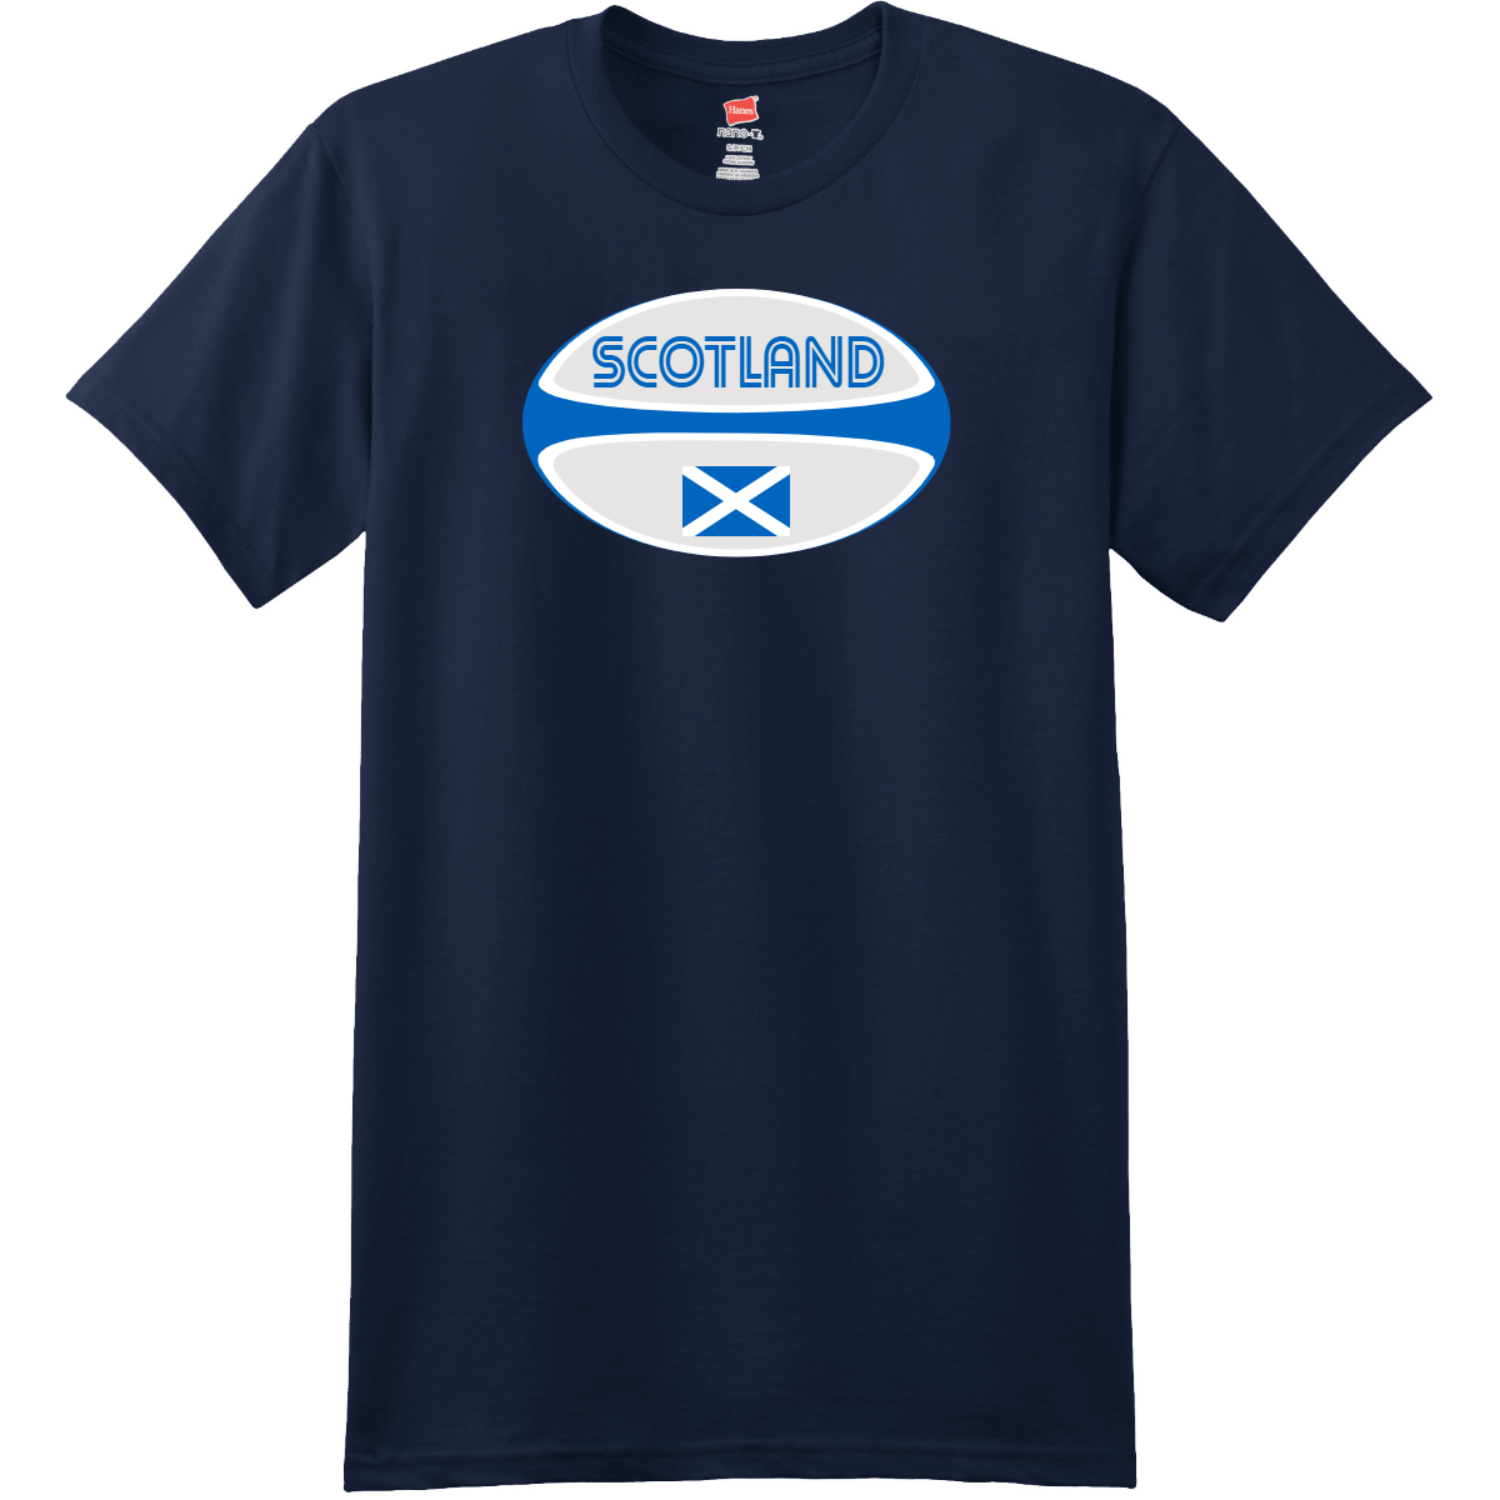 Scotland Rugby Ball T-Shirt Navy Hanes Nano 4980 Ringspun Cotton T Shirt